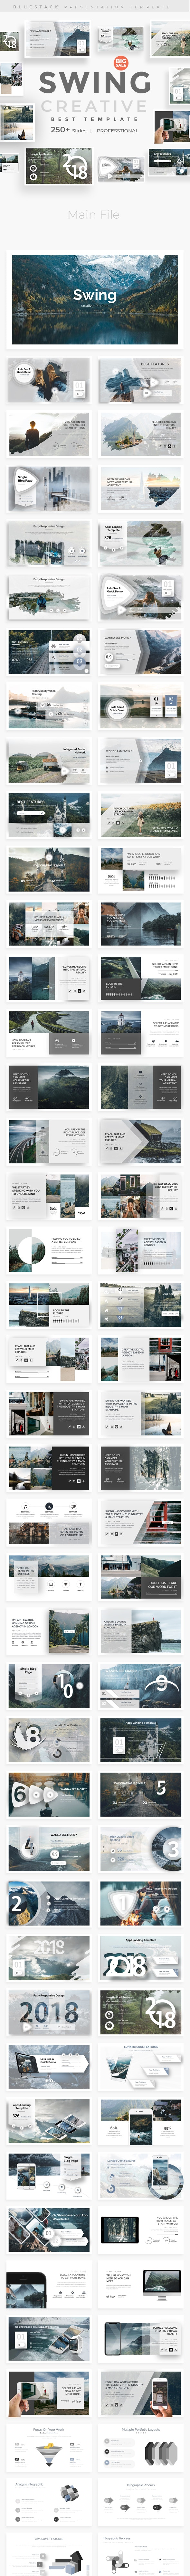 Swing Creative Powerpoint Template - Creative PowerPoint Templates